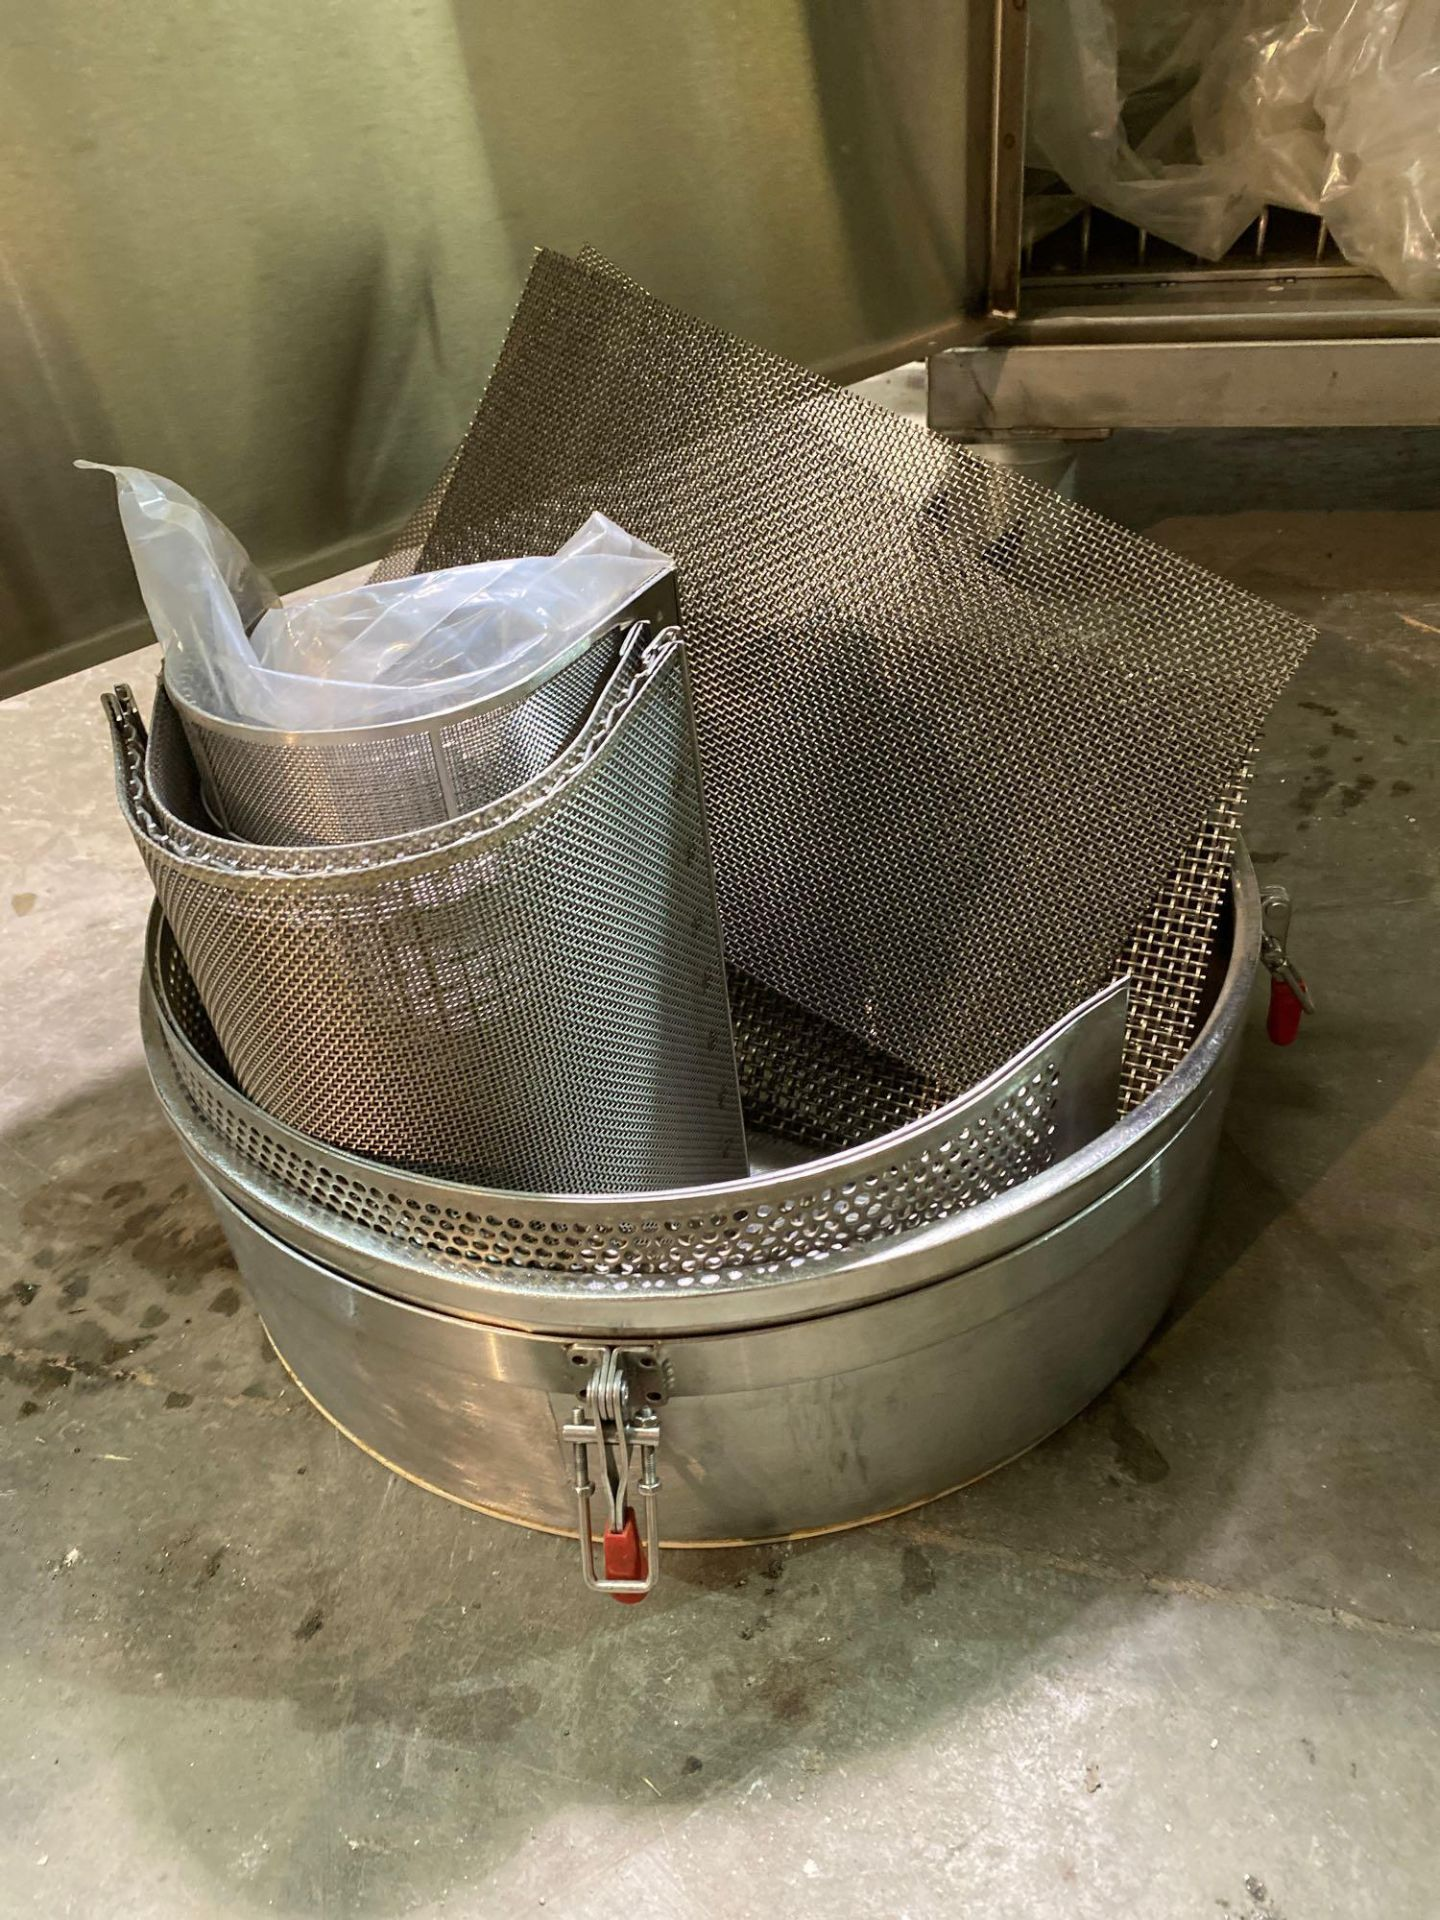 Mobile Stainless Steel Cabinet with Sifter Sieves - Assorted Sizes - Image 5 of 13